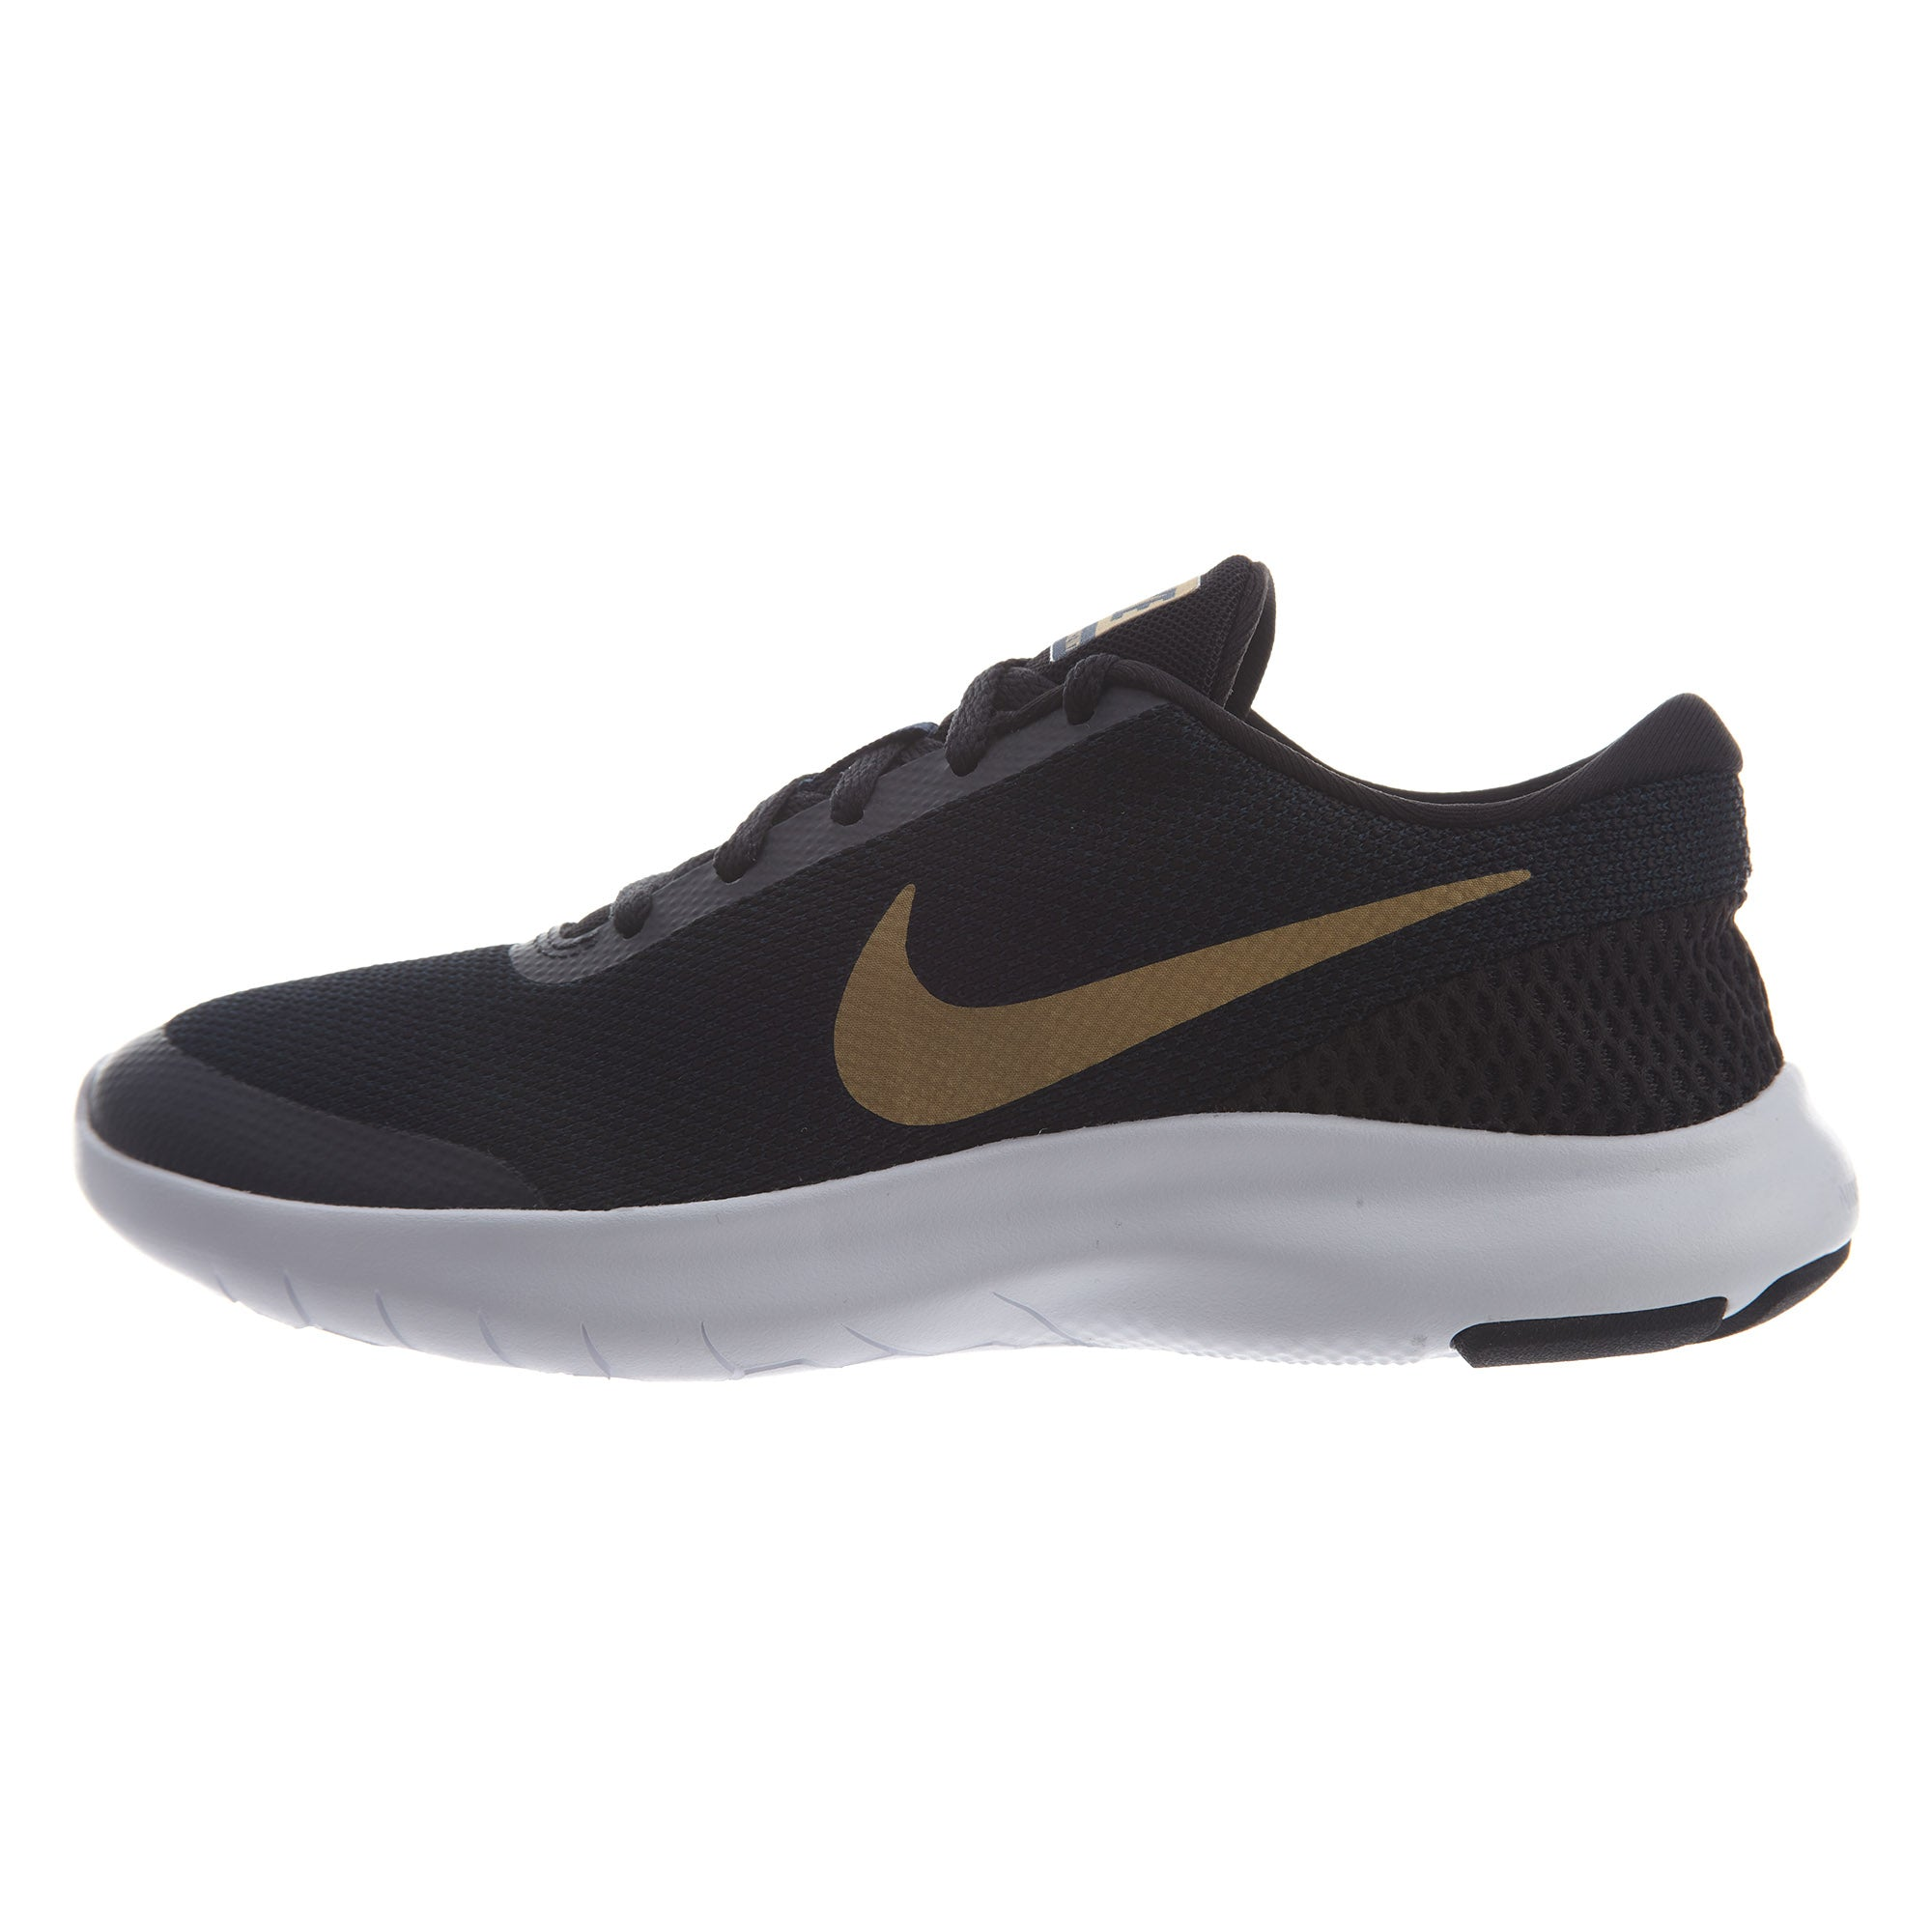 928c11c612d Nike Flex Experience Rn 7 Womens 908996-012 – Sneaker Experts